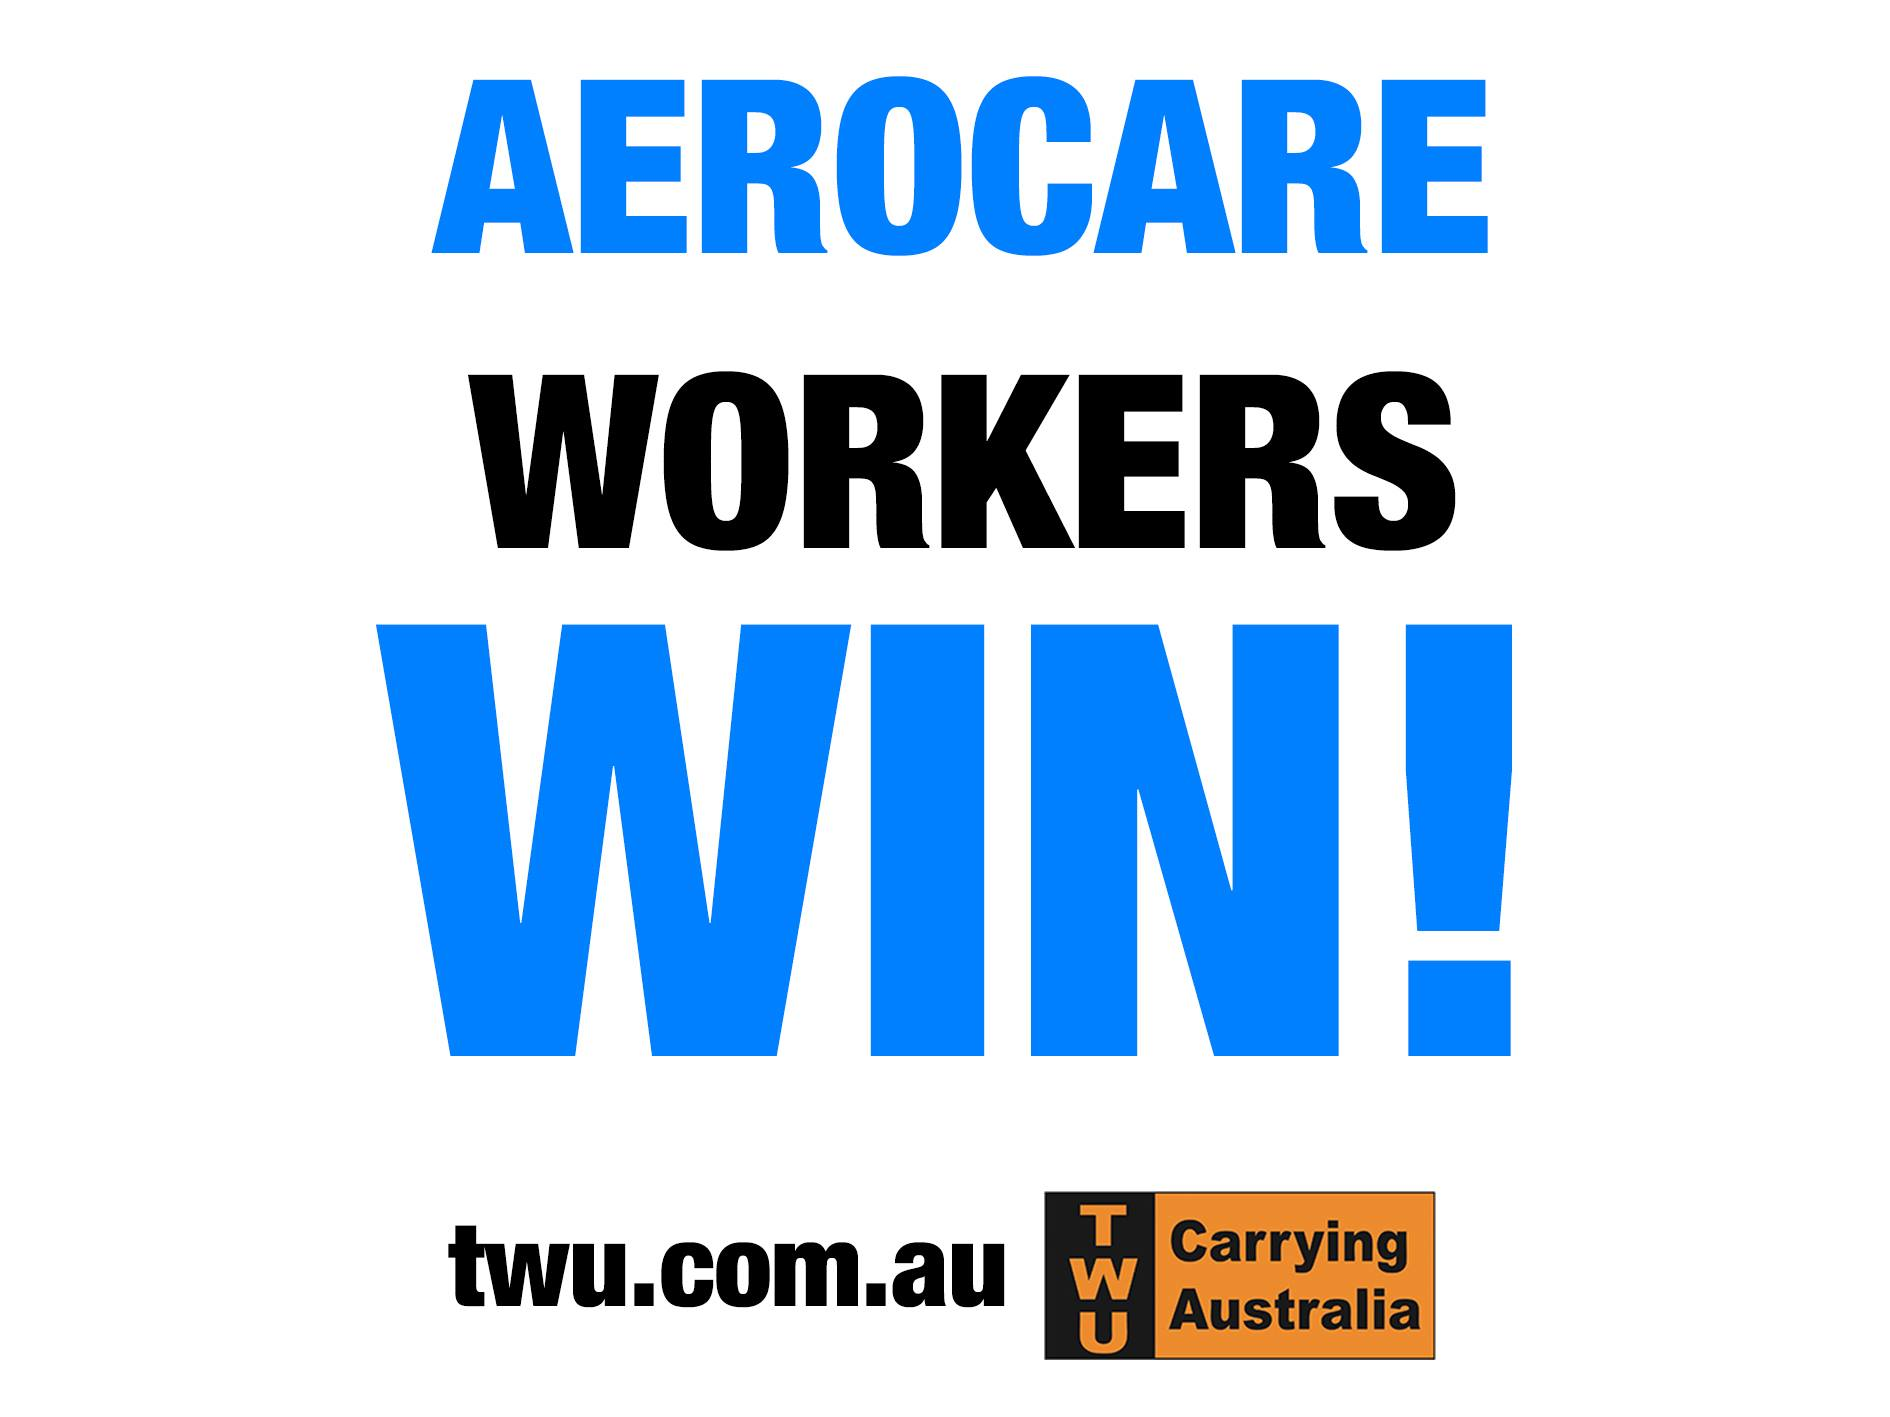 Twu Victas Dodgy Below Award Aerocare Agreement Rejected By Fair